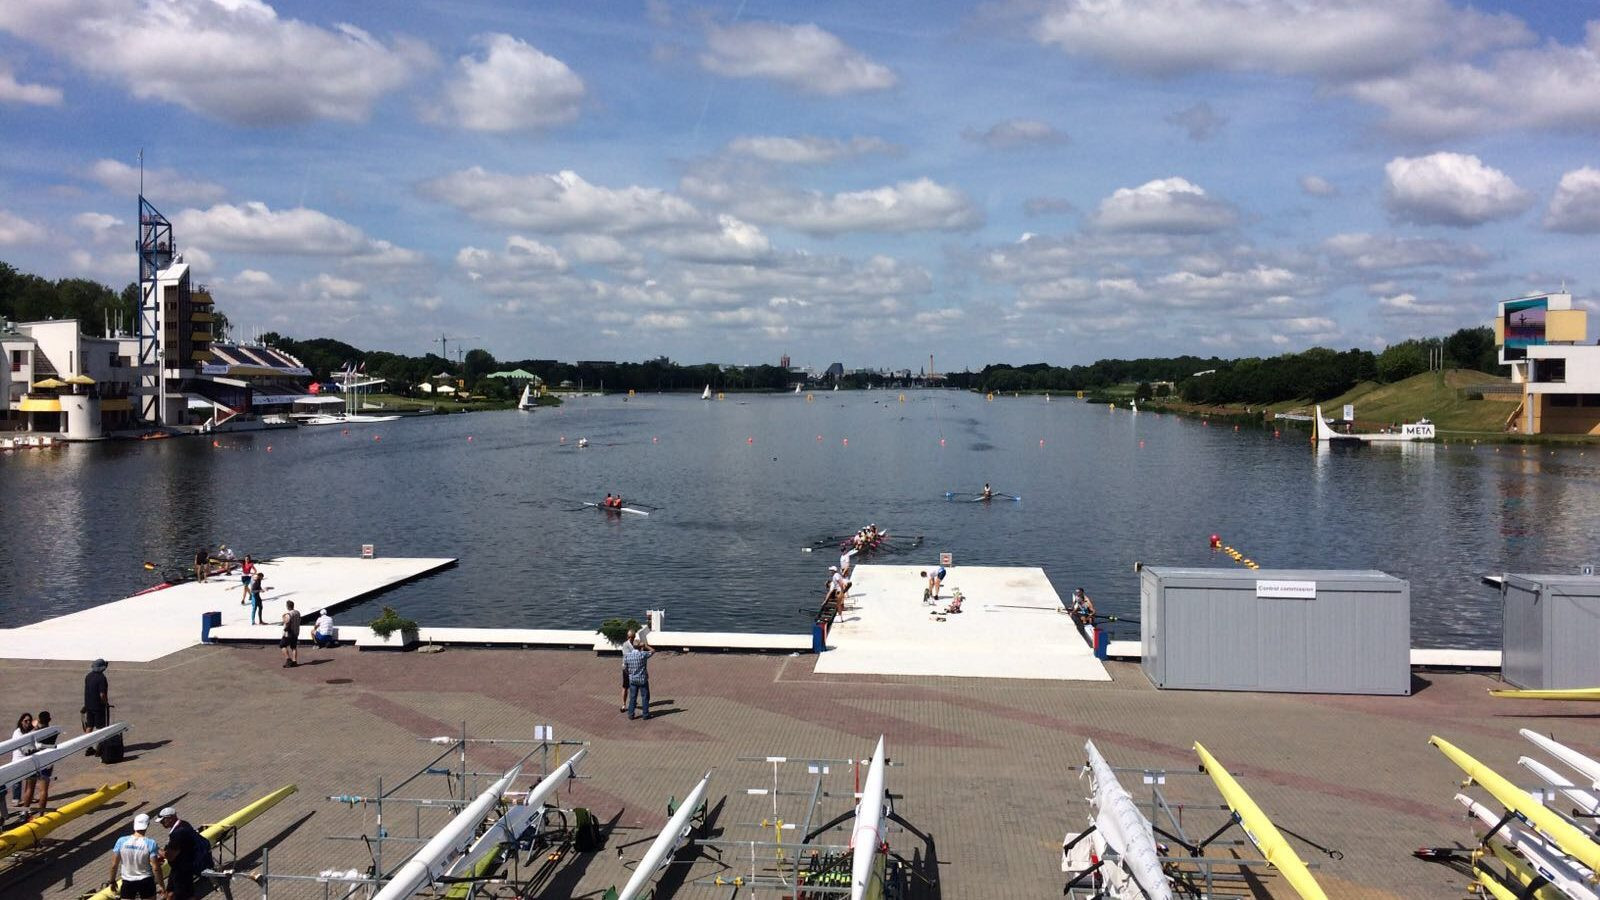 More than 500 athletes to compete at European Rowing Championships